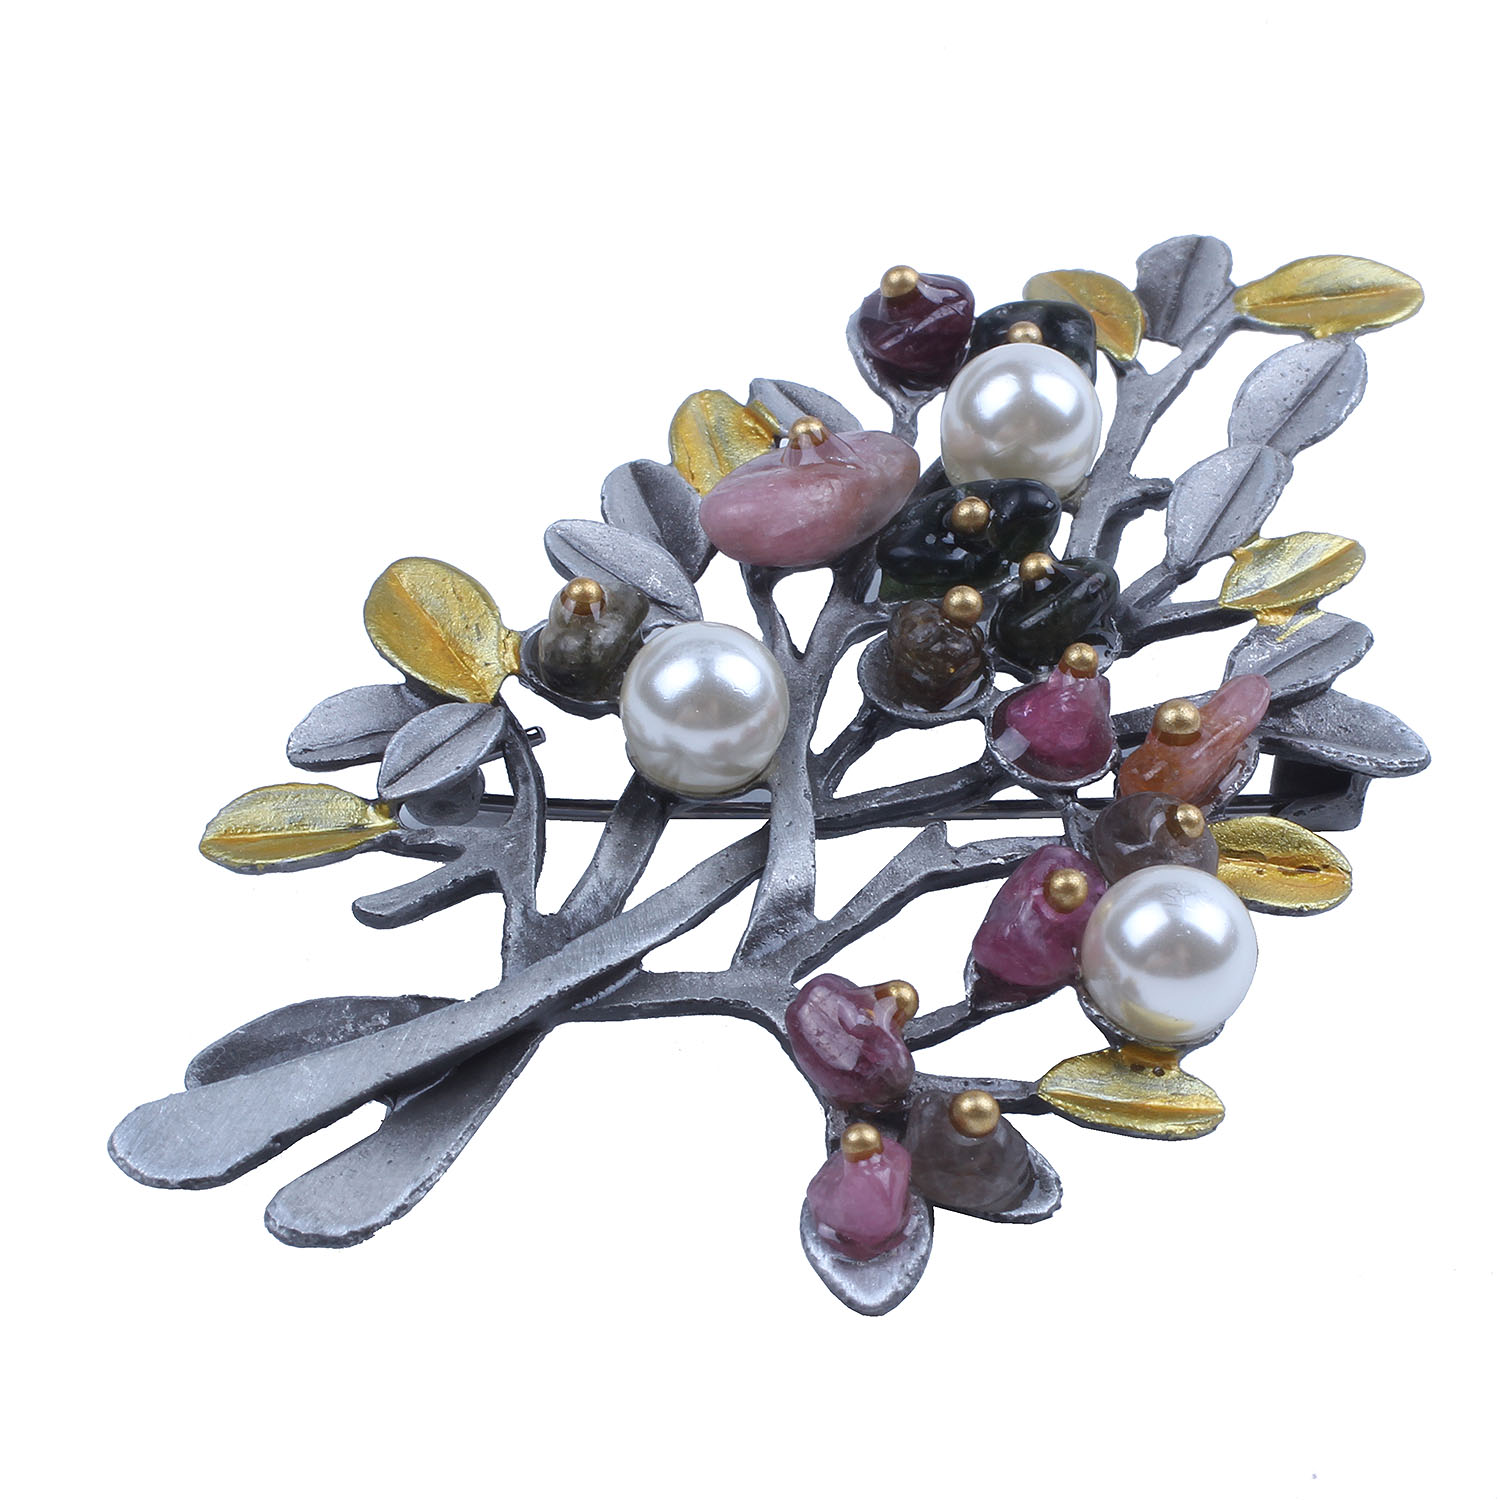 Vintage Natural Stone Brooch Pendant Retro Tree Shaped Women Imitation Pearl Brooch Jewelry